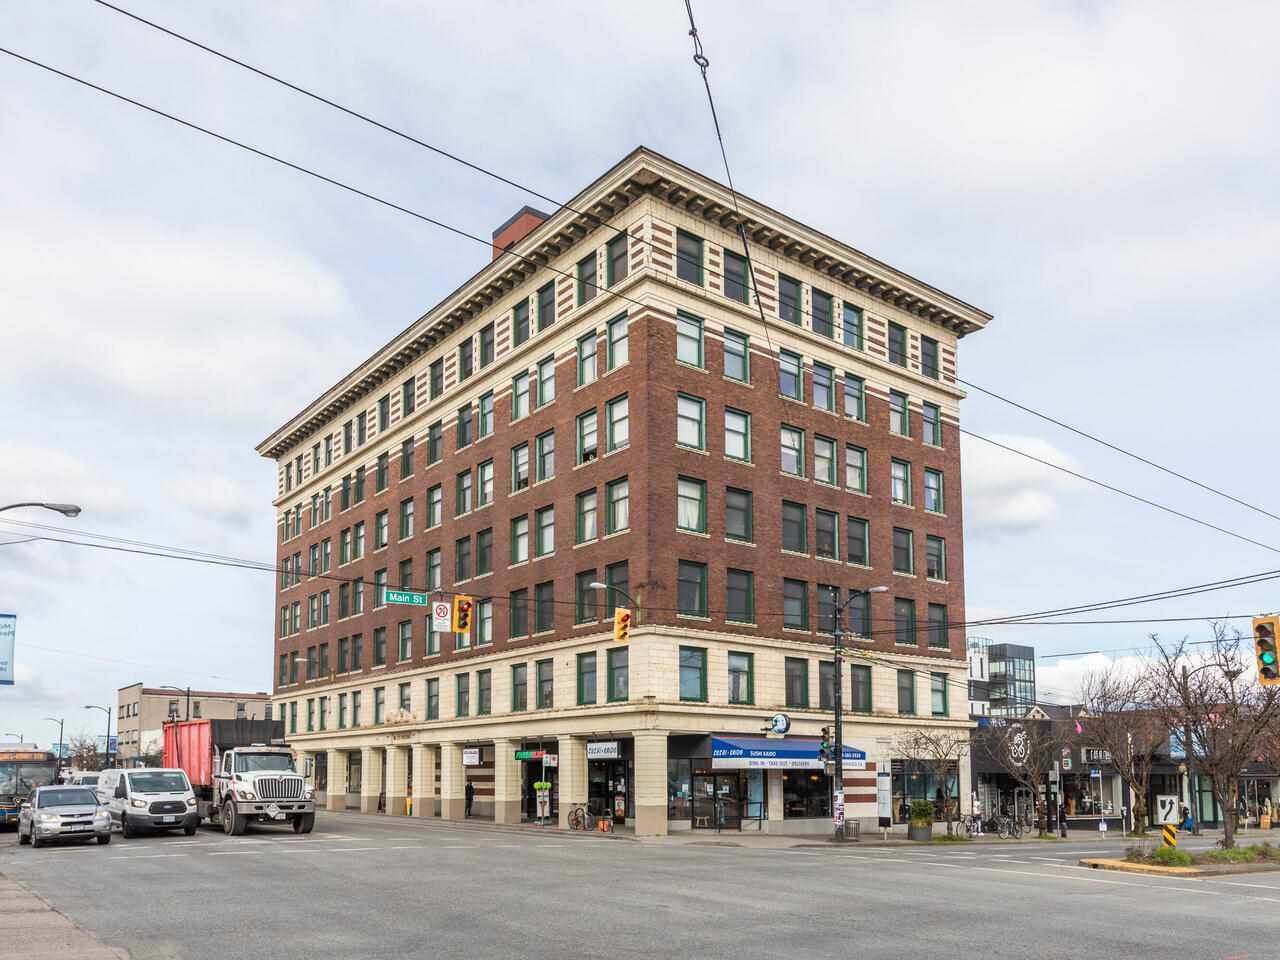 """Main Photo: 306 175 E BROADWAY in Vancouver: Mount Pleasant VE Condo for sale in """"Lee Building"""" (Vancouver East)  : MLS®# R2559820"""